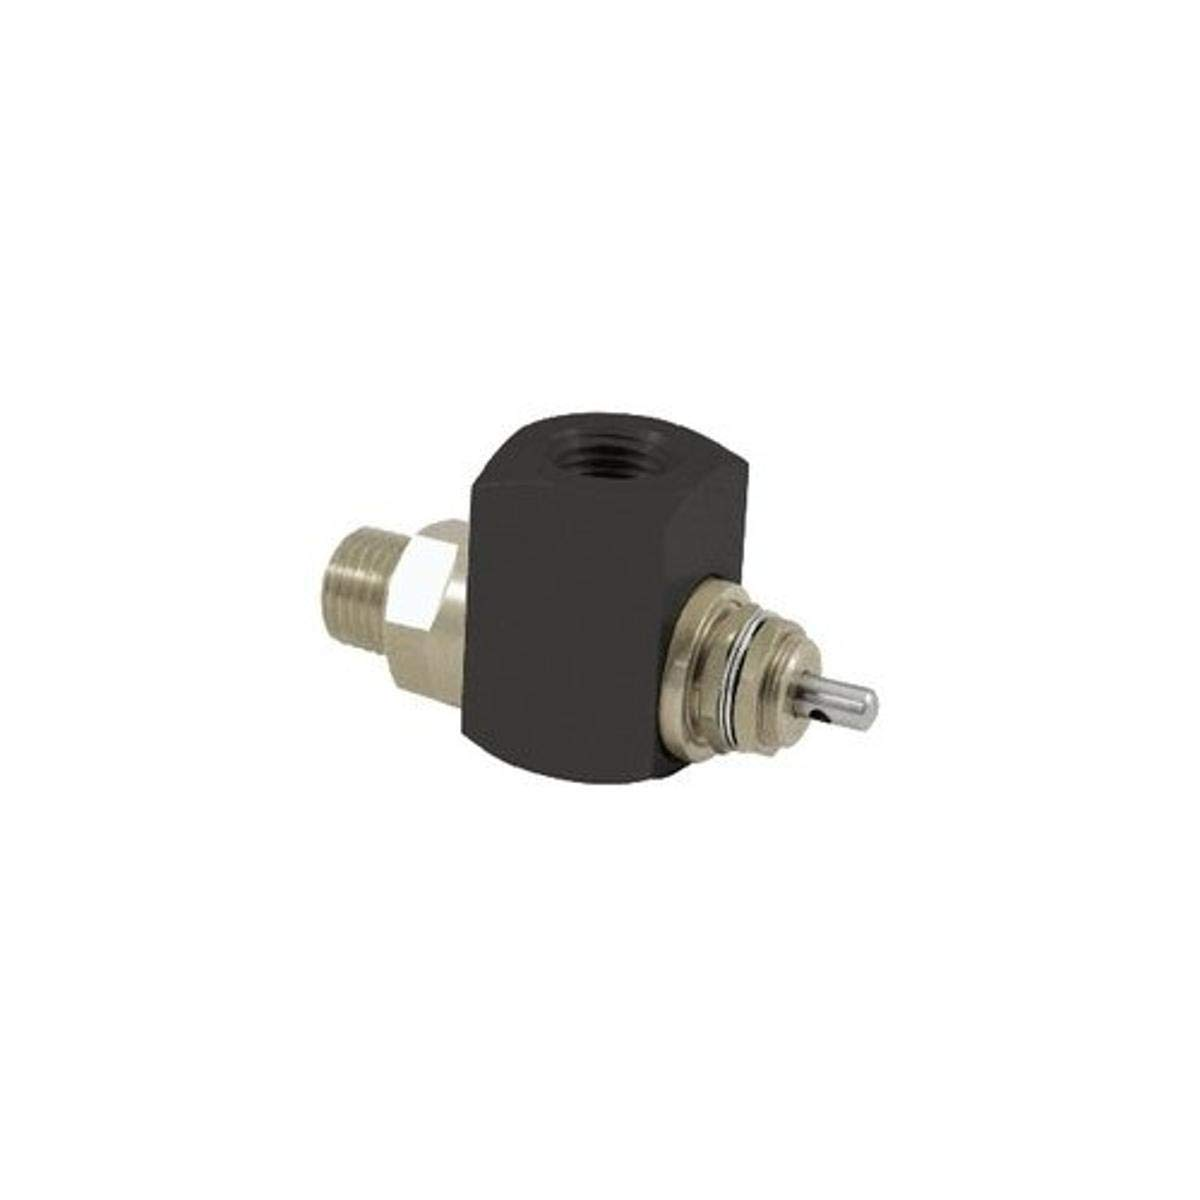 Max 47% OFF Clippard Safety and trust GV-3Q 3-Way Stem Valve 1 4